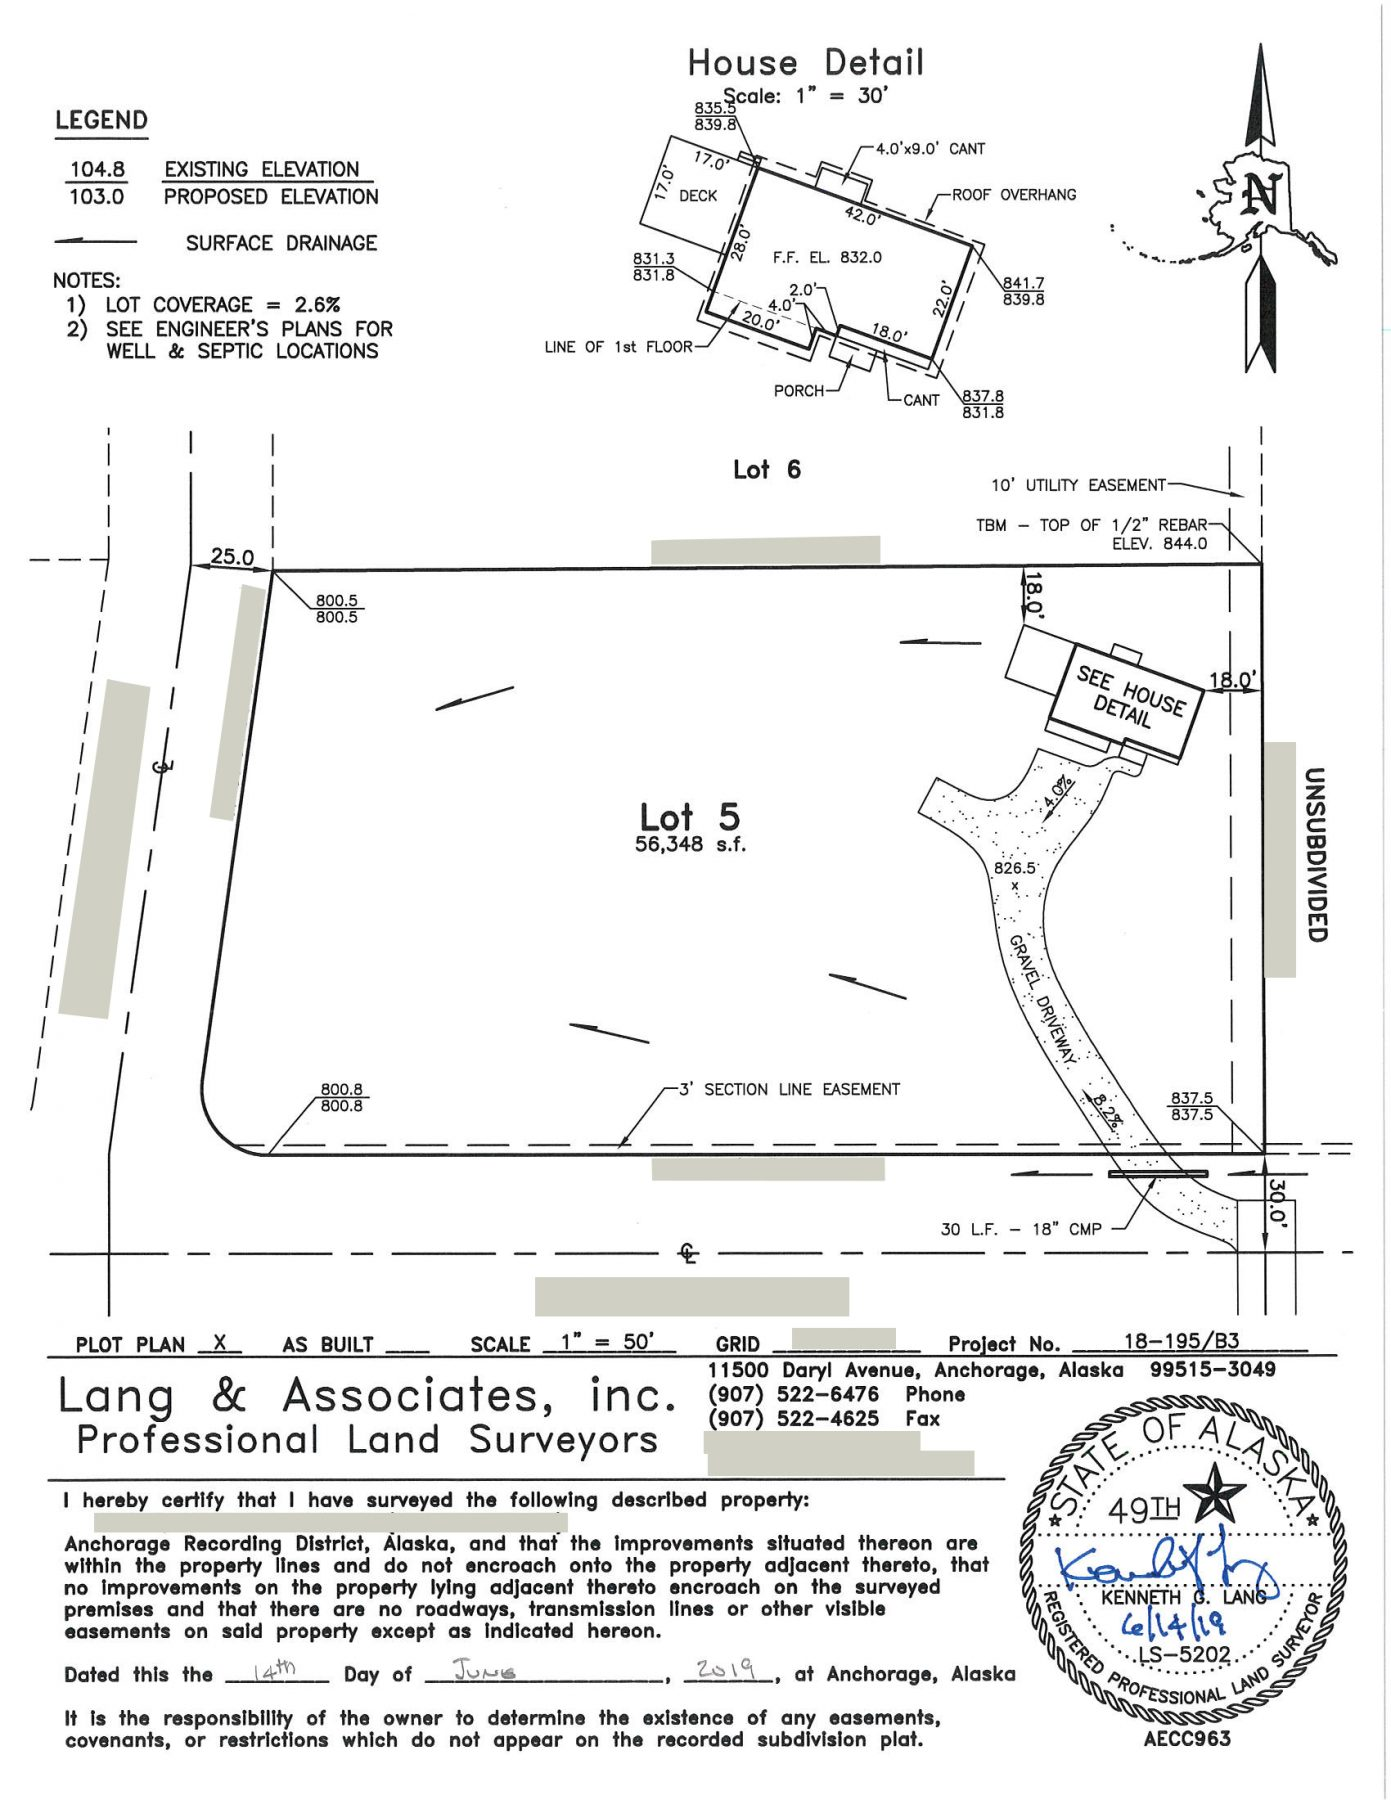 AK House Project plot plan